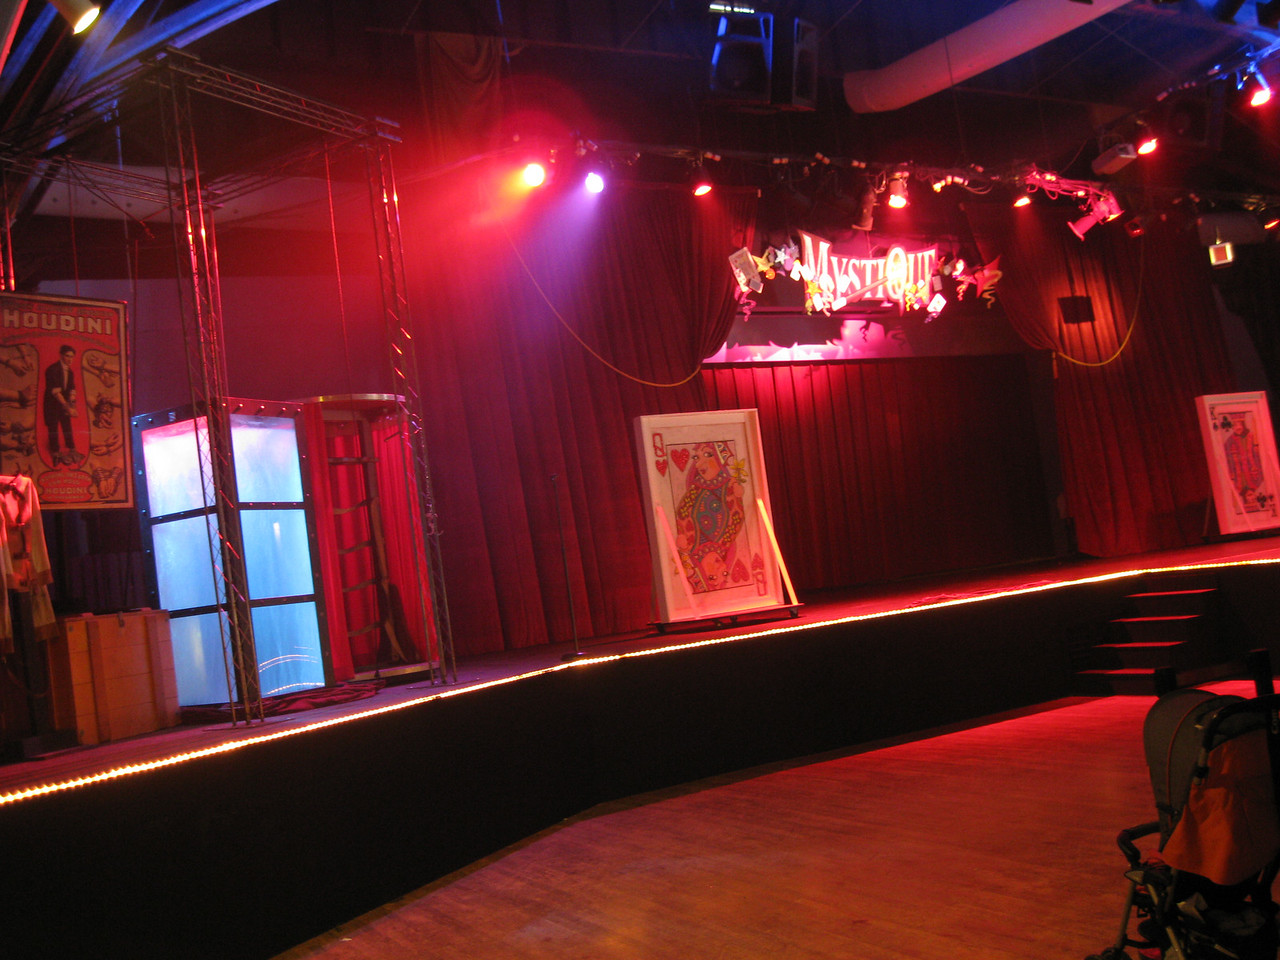 Inside the Dancehall Theater. Still using cloudy white balance.